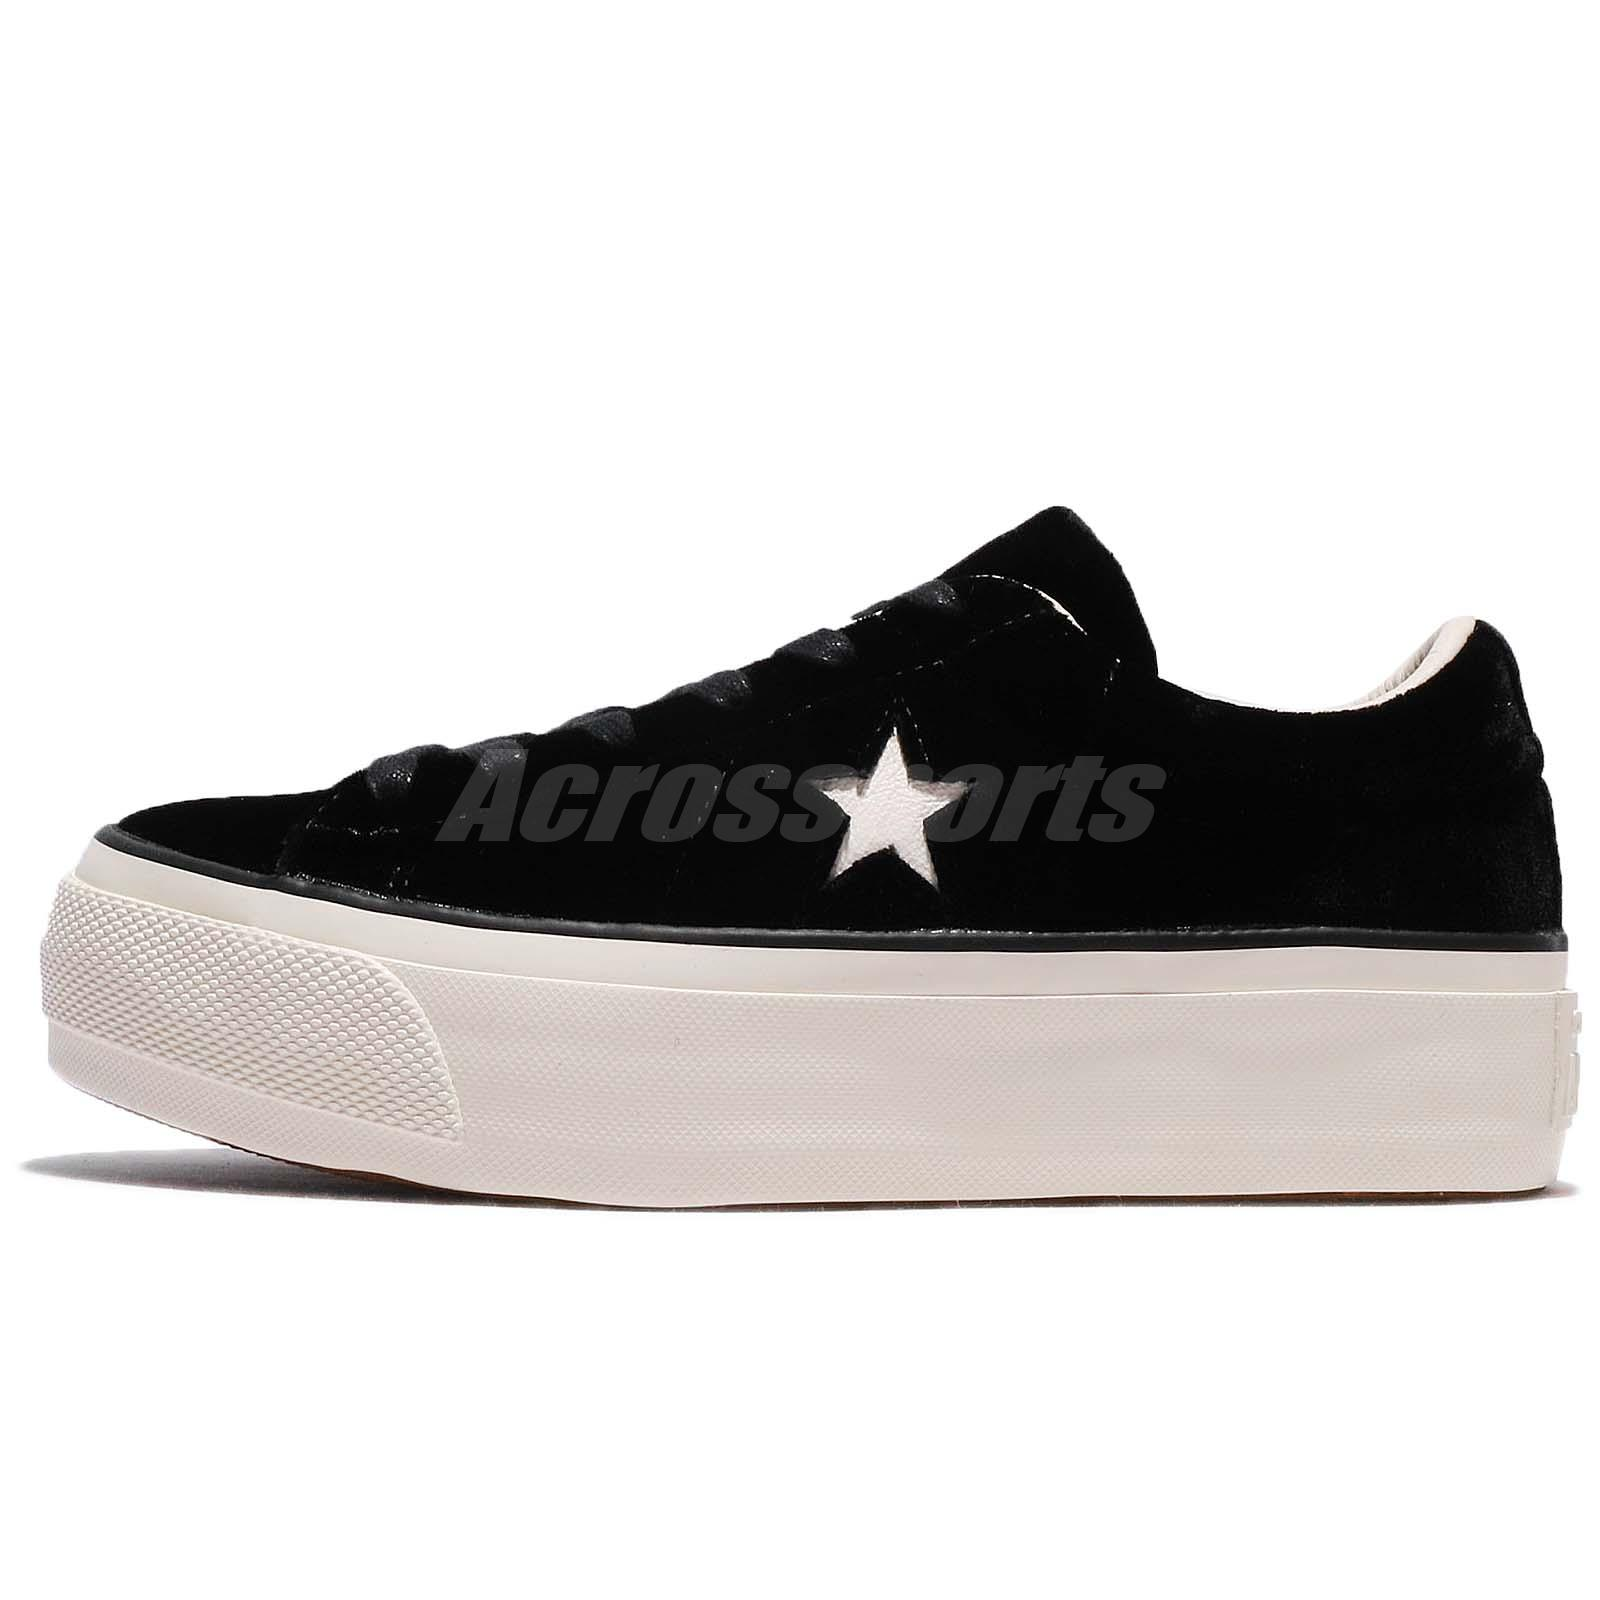 a48229ec232b Converse One Star Platform Velvet Black Ivory Low Women Shoes Sneakers  558950C